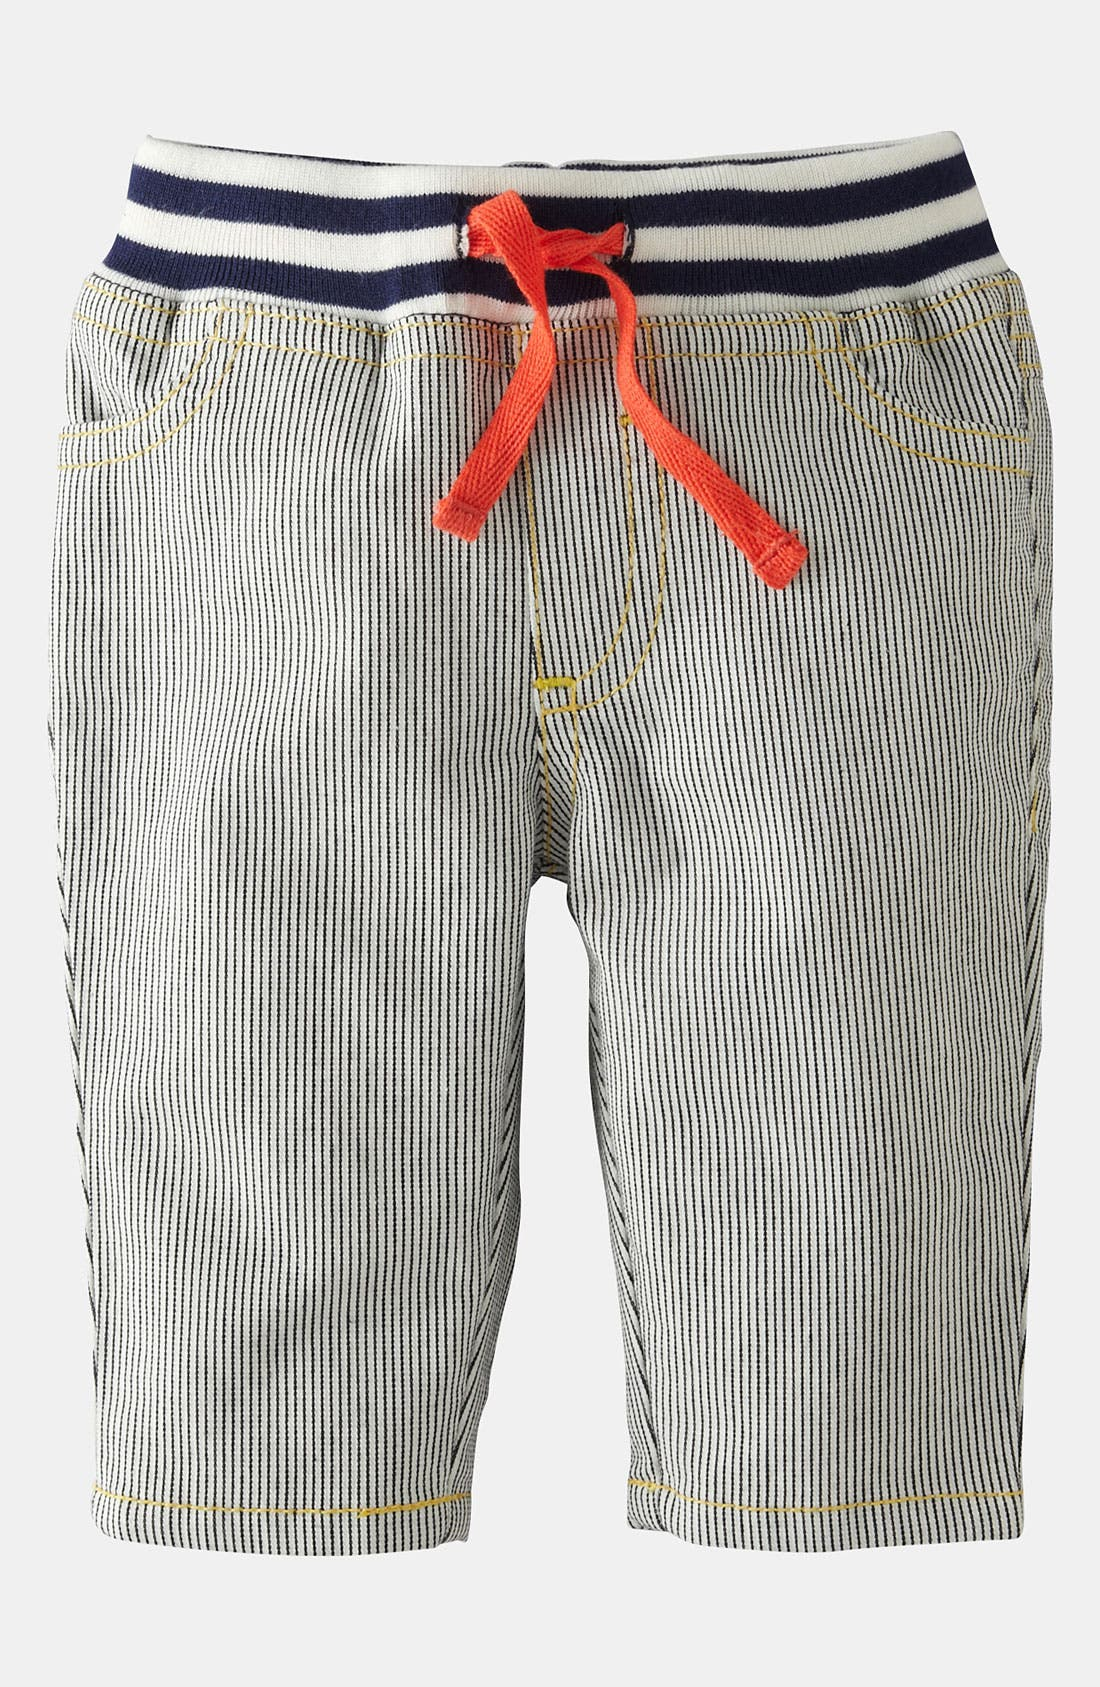 Main Image - Mini Boden 'Baby' Jeans (Baby)